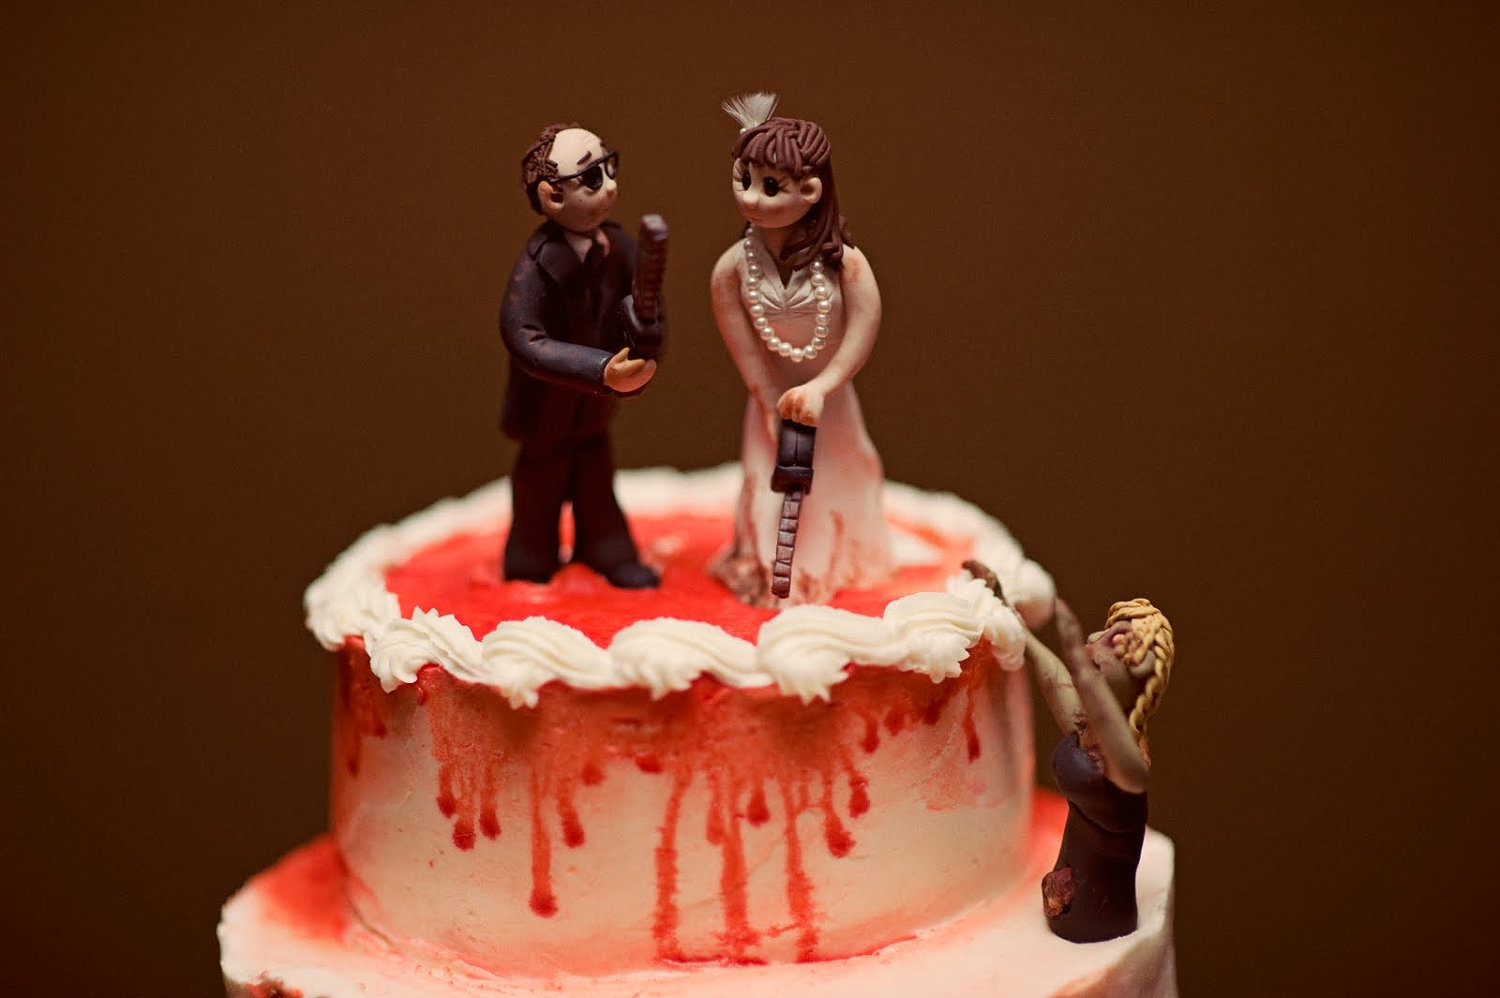 Cake Toppers Cake : chilling bride and groom wedding cake topper OneWed.com